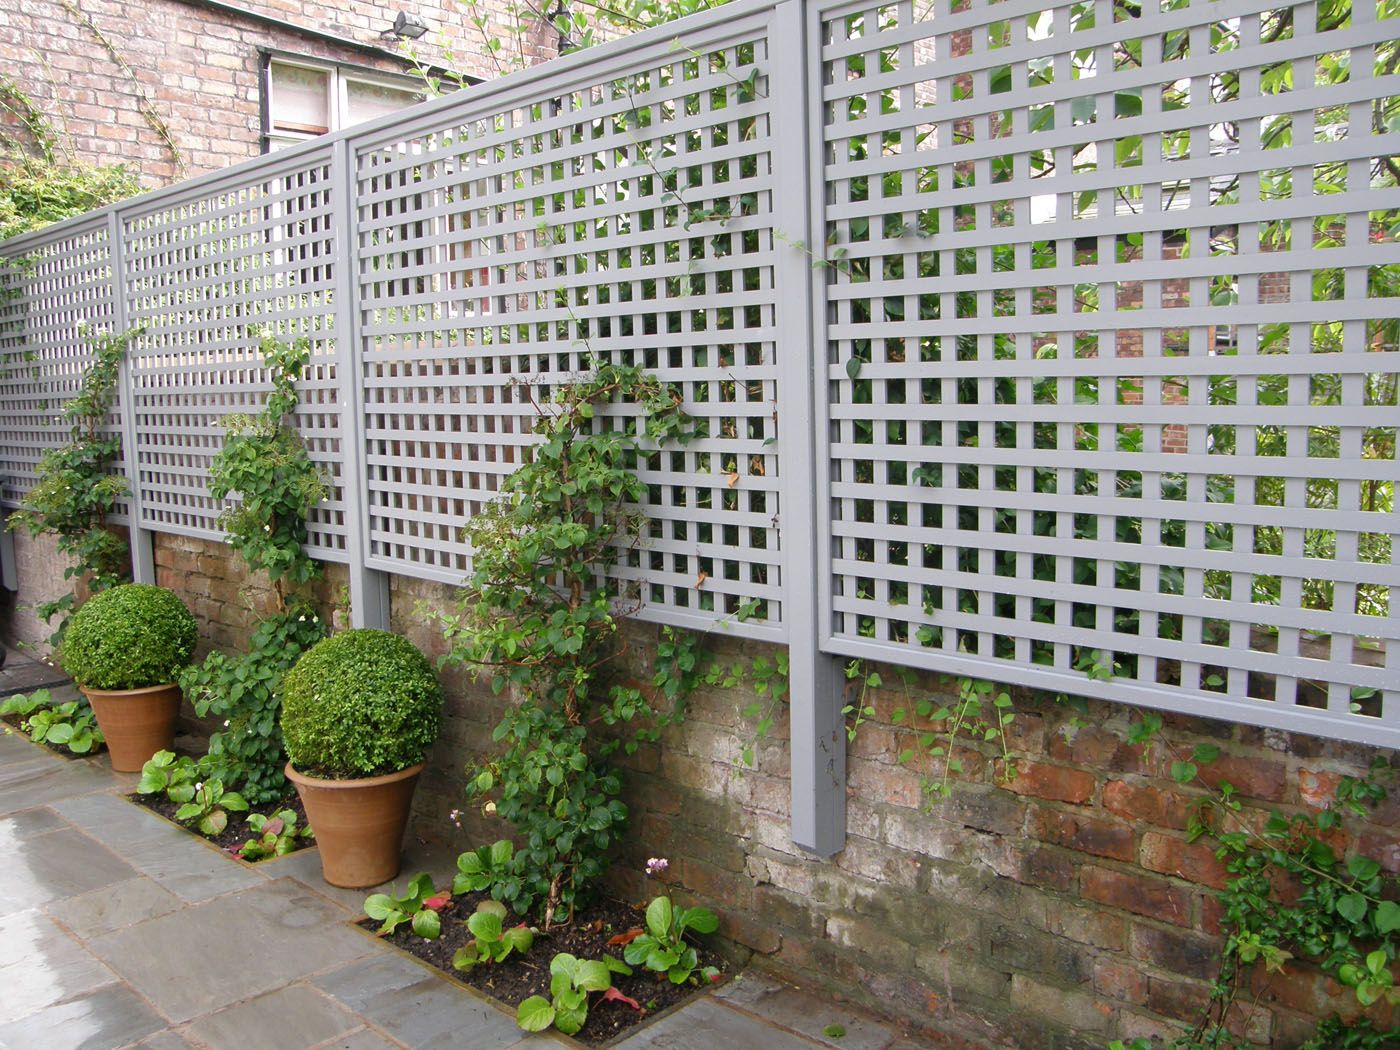 Creative Uses for Garden Trellises. Trellis Fence.